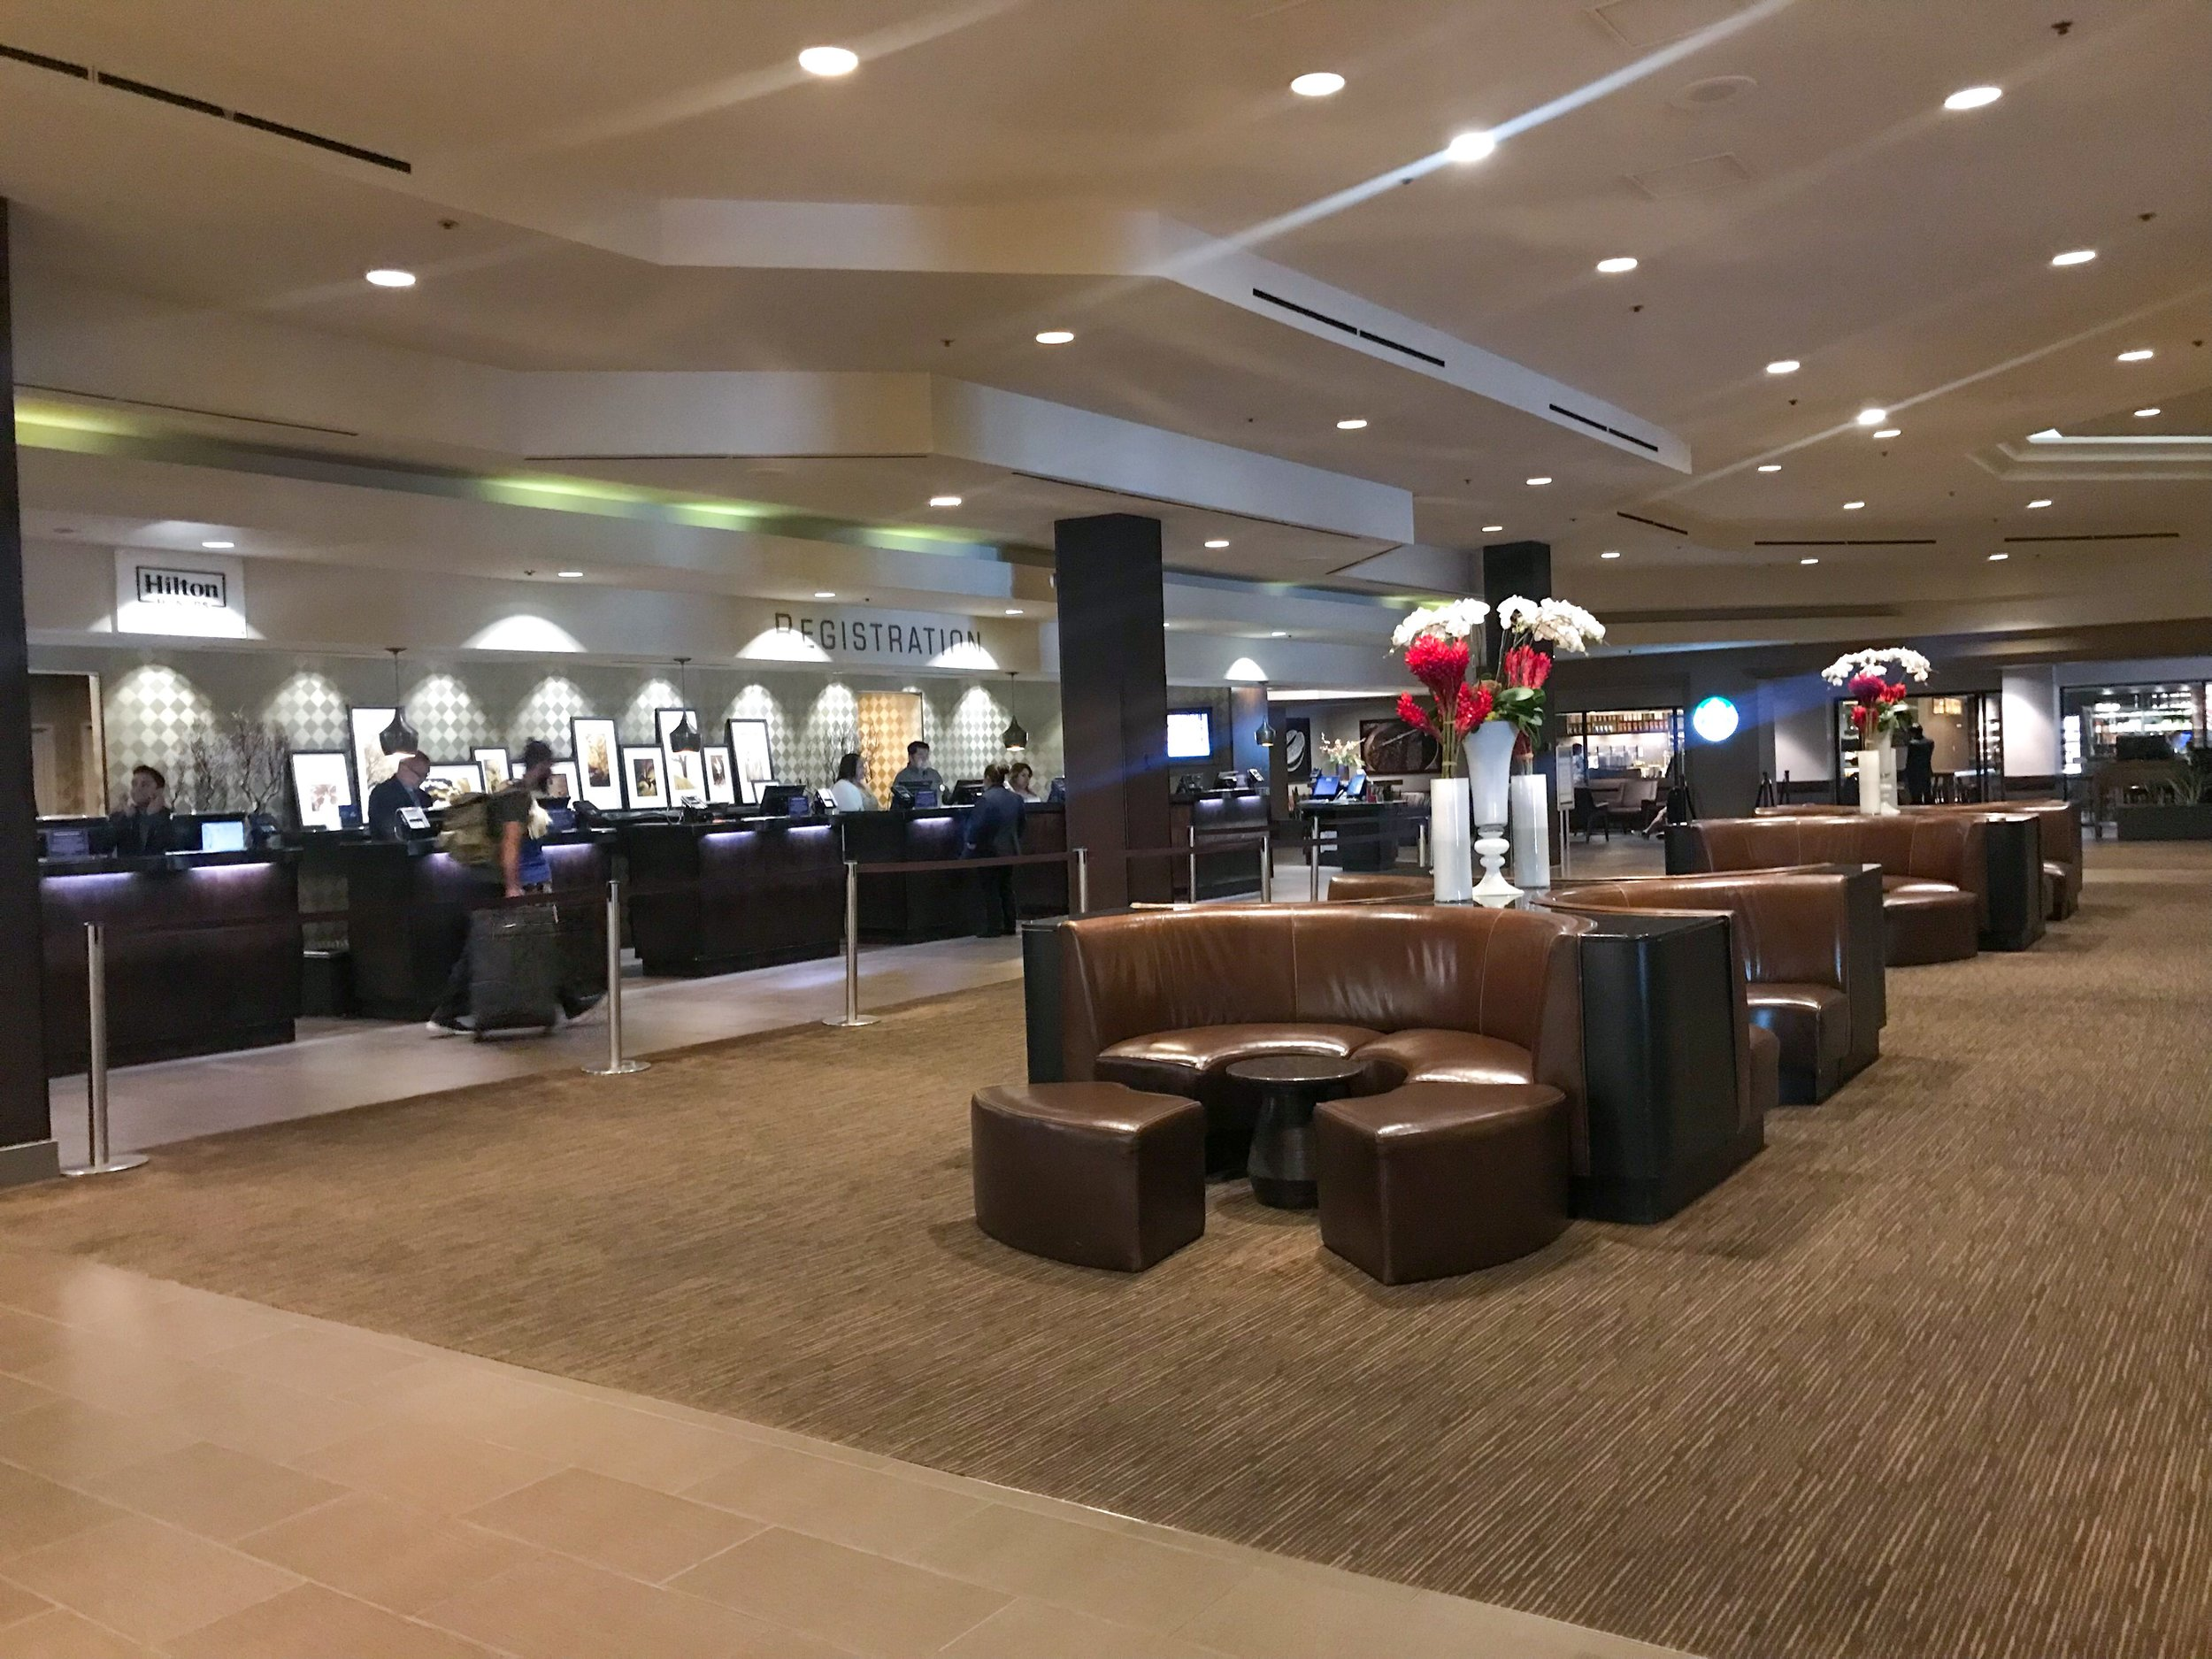 Open and spacious lobby with plenty of check-in stations at the registration desk.